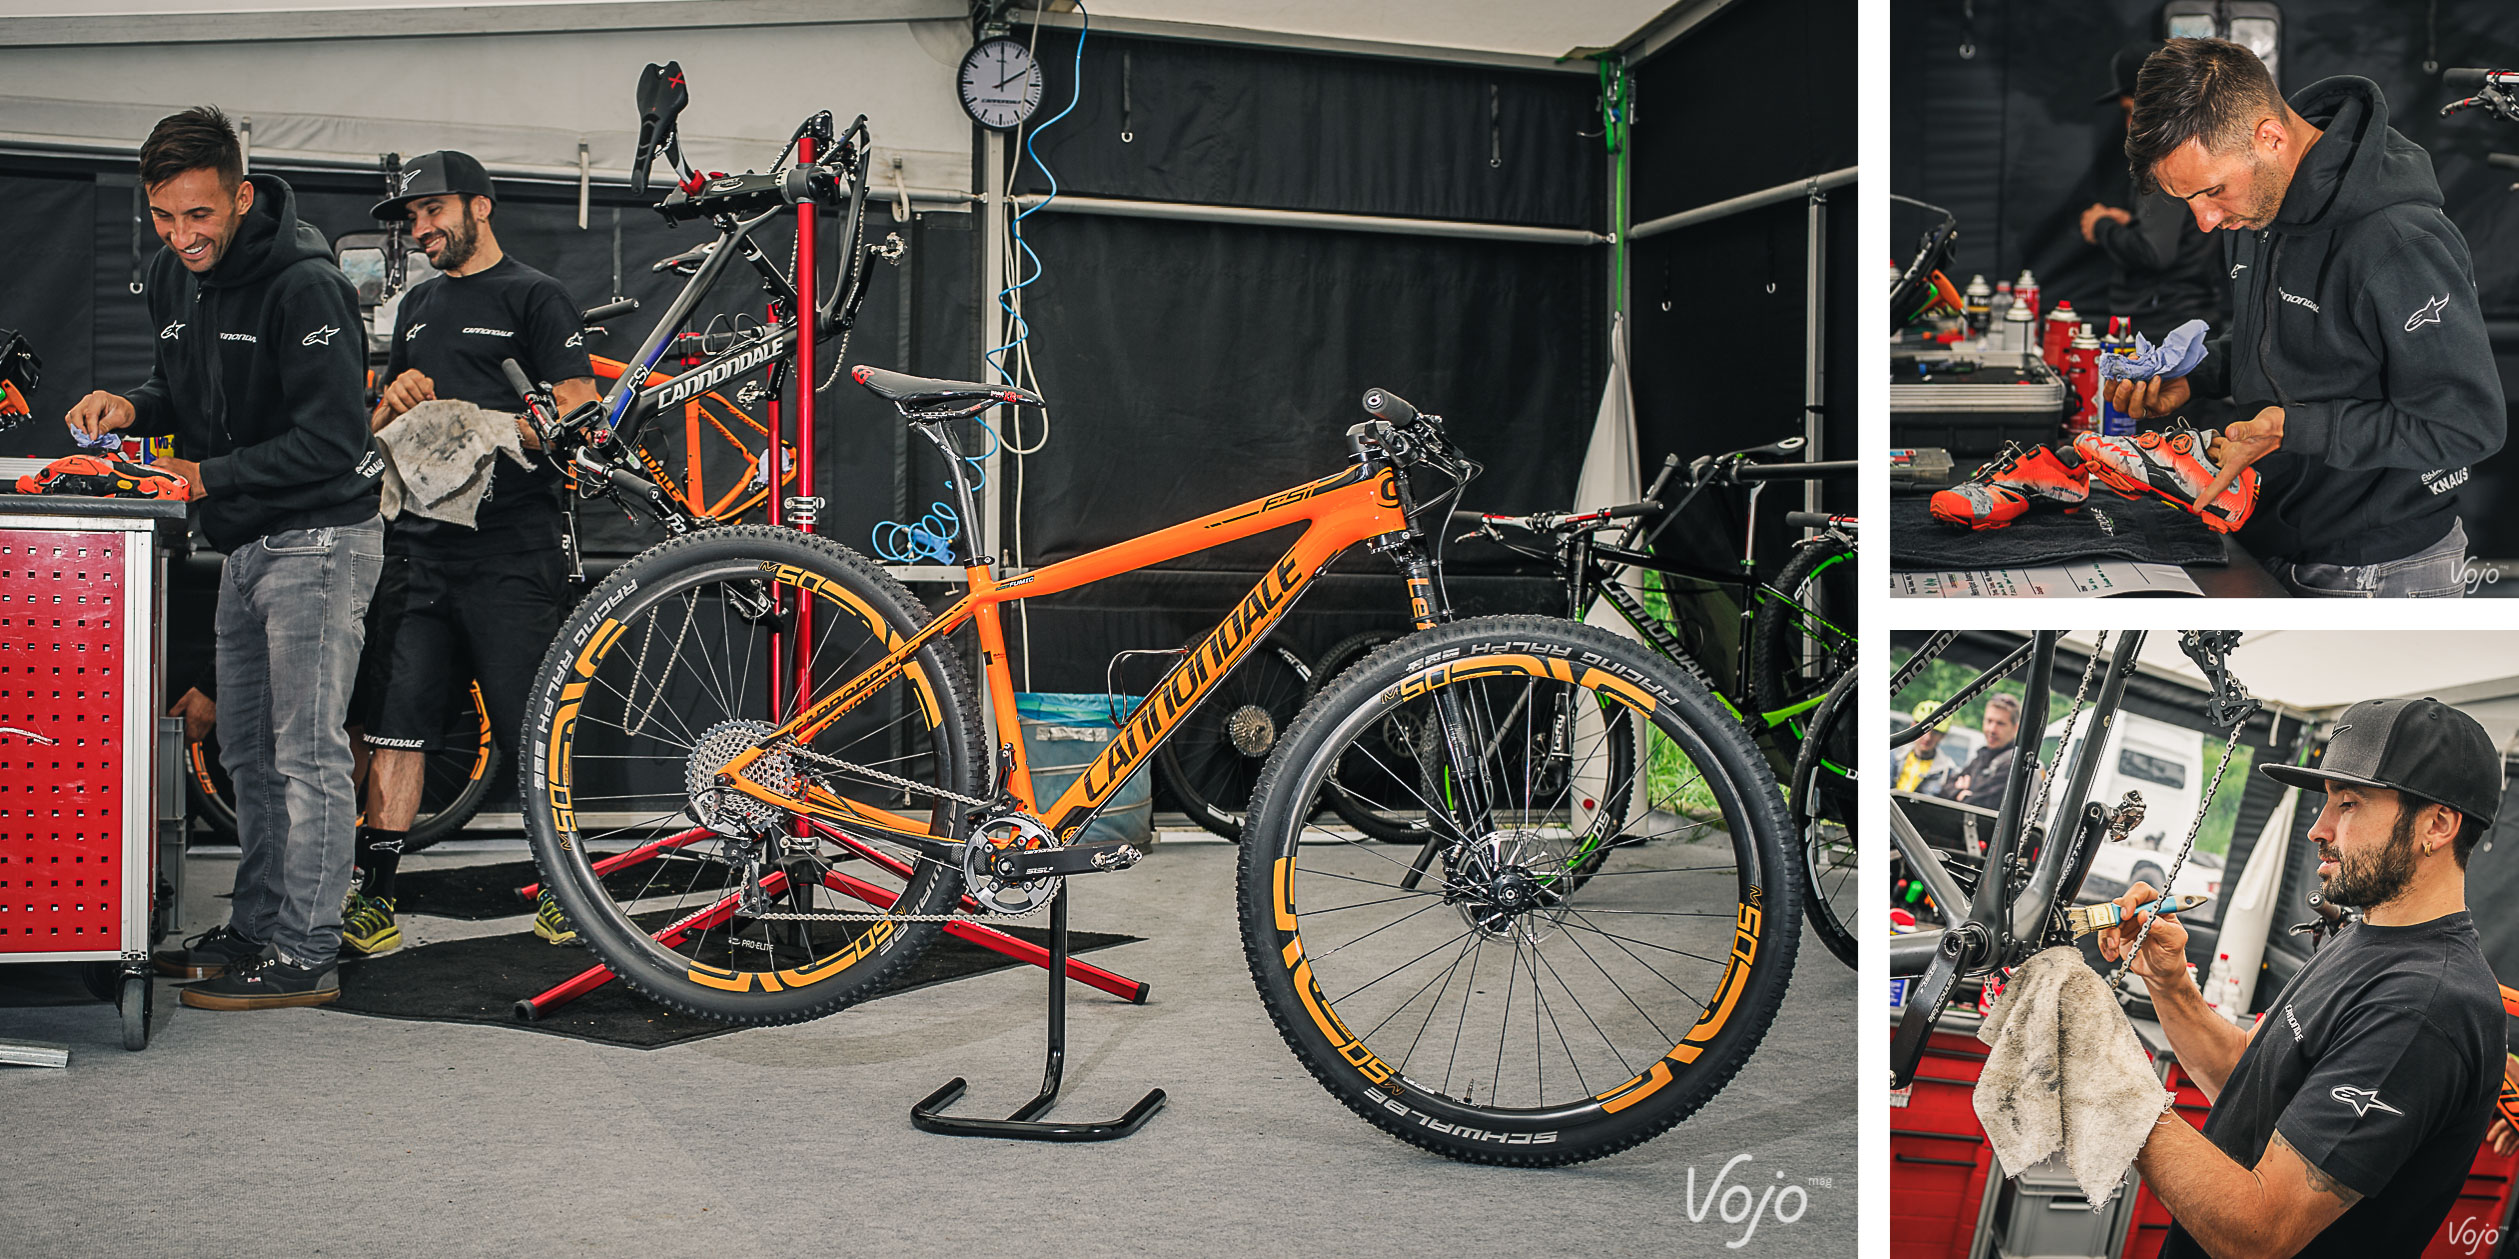 1-Cannondale_FSi_Marco_Fontana_World_Cup_Bike_Copyright_OBeart_VojoMag-1